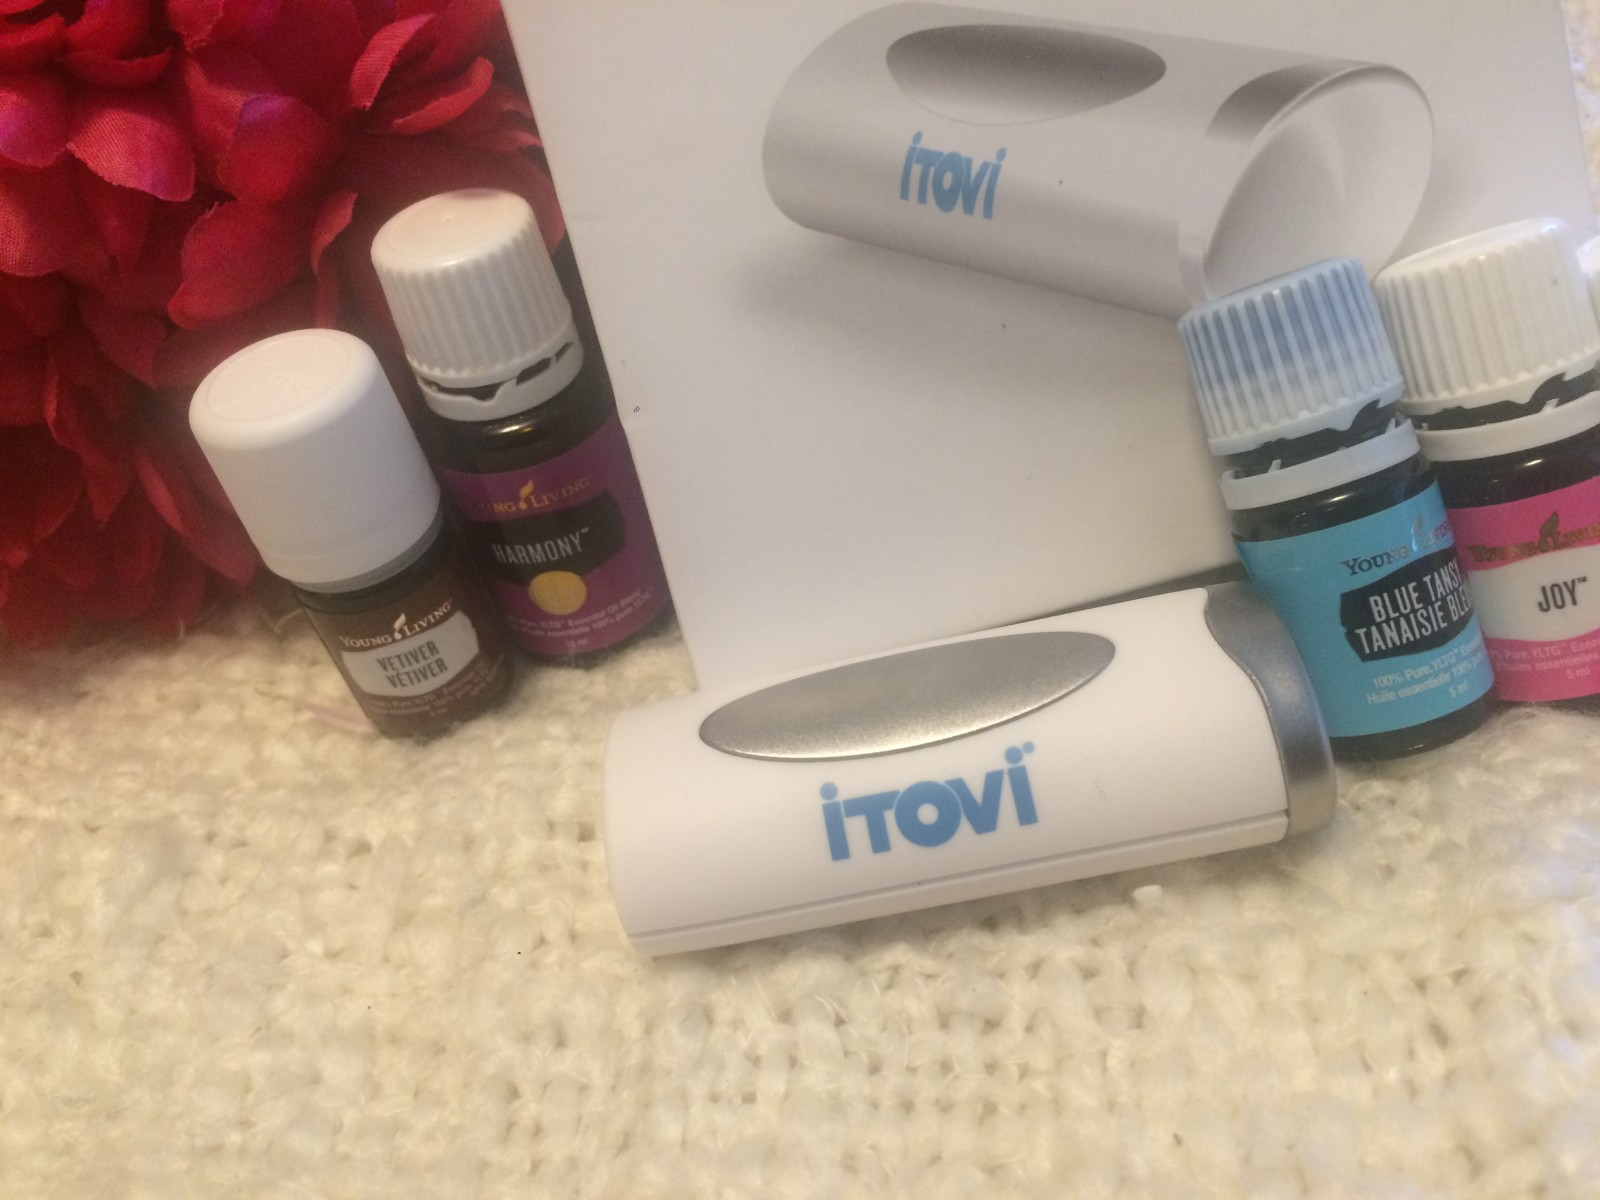 iTovi to Simplify Your Essential Oil Journey